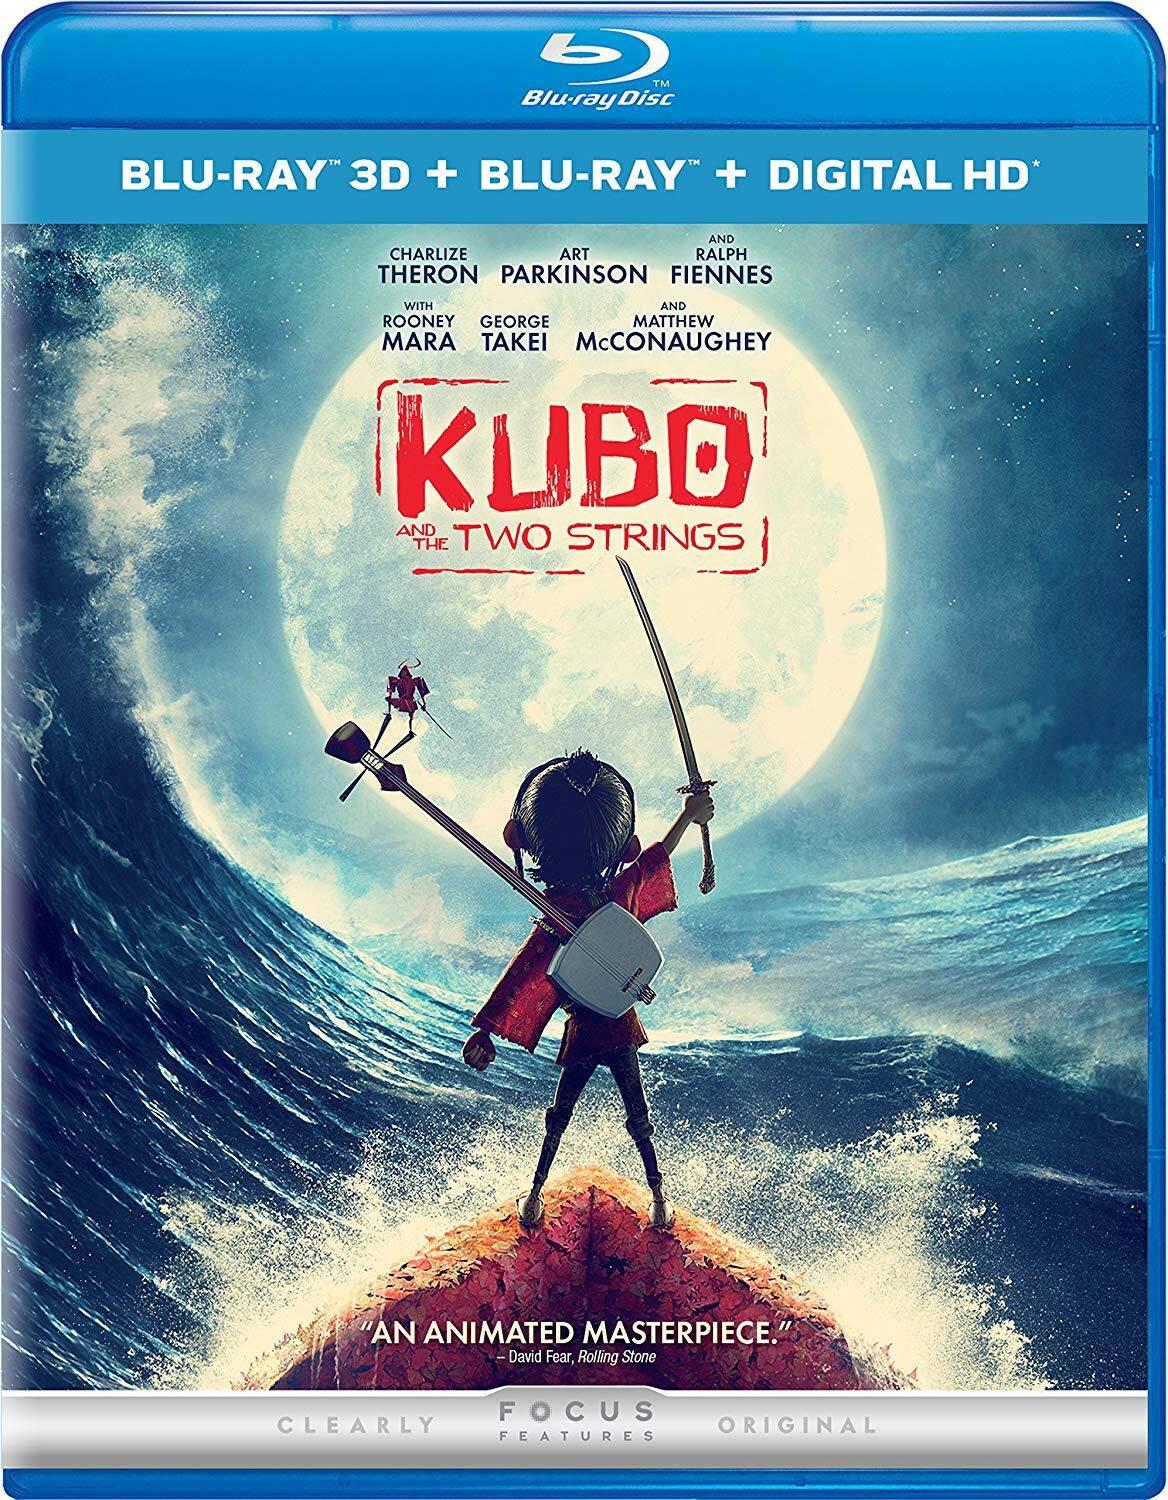 Kubo and the Two Strings 3D Blu-Ray + Blu-Ray + Digital $9.79